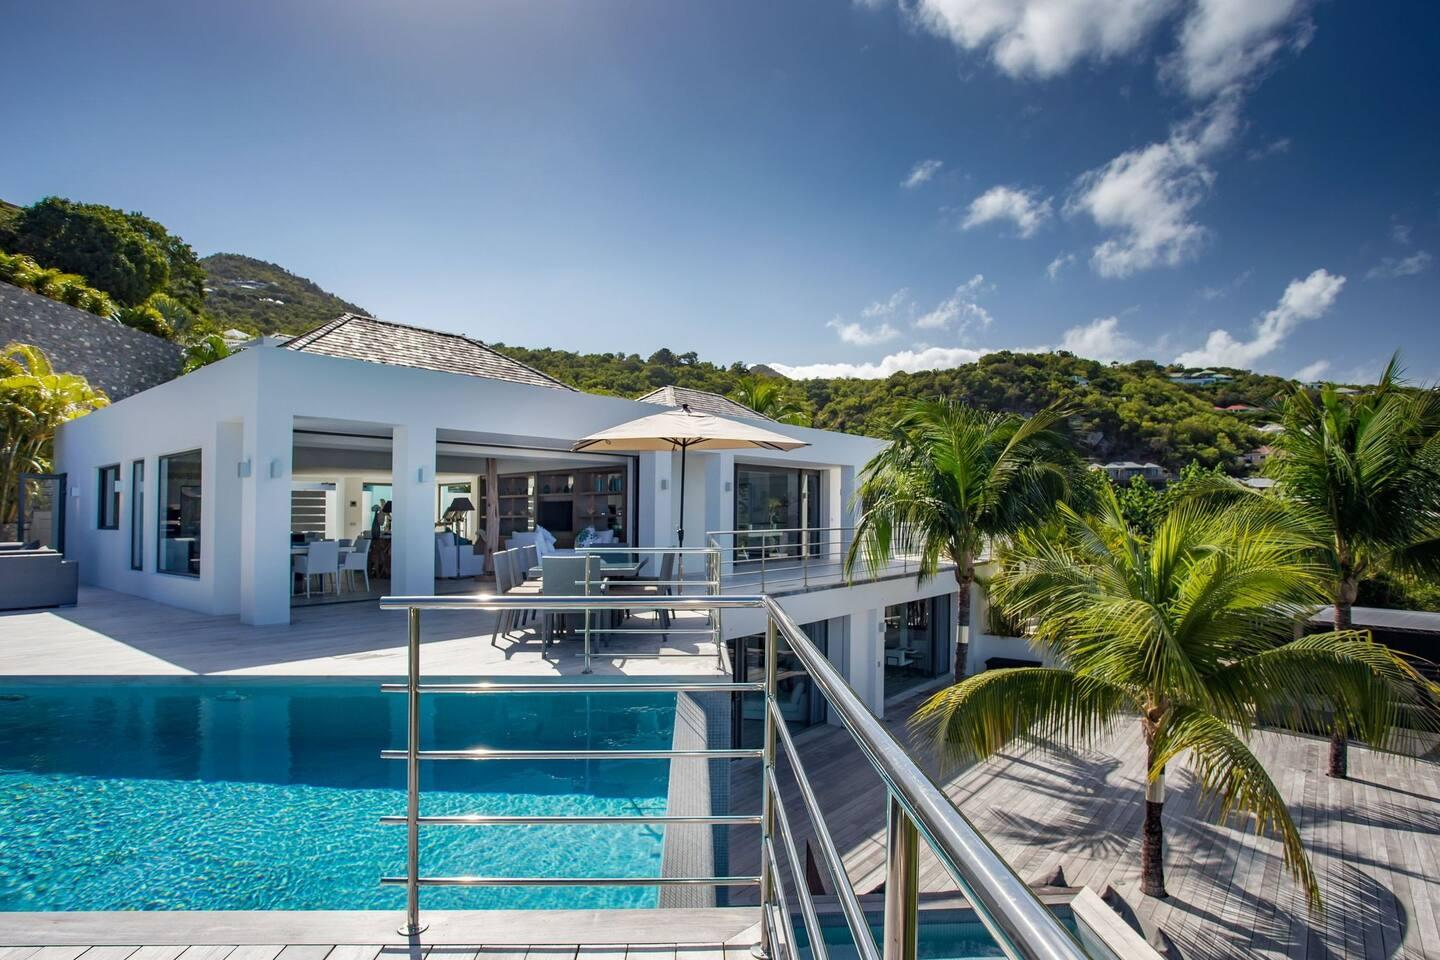 Property Image 2 - Vibrant Sunny Villa with an Amazing Sea View